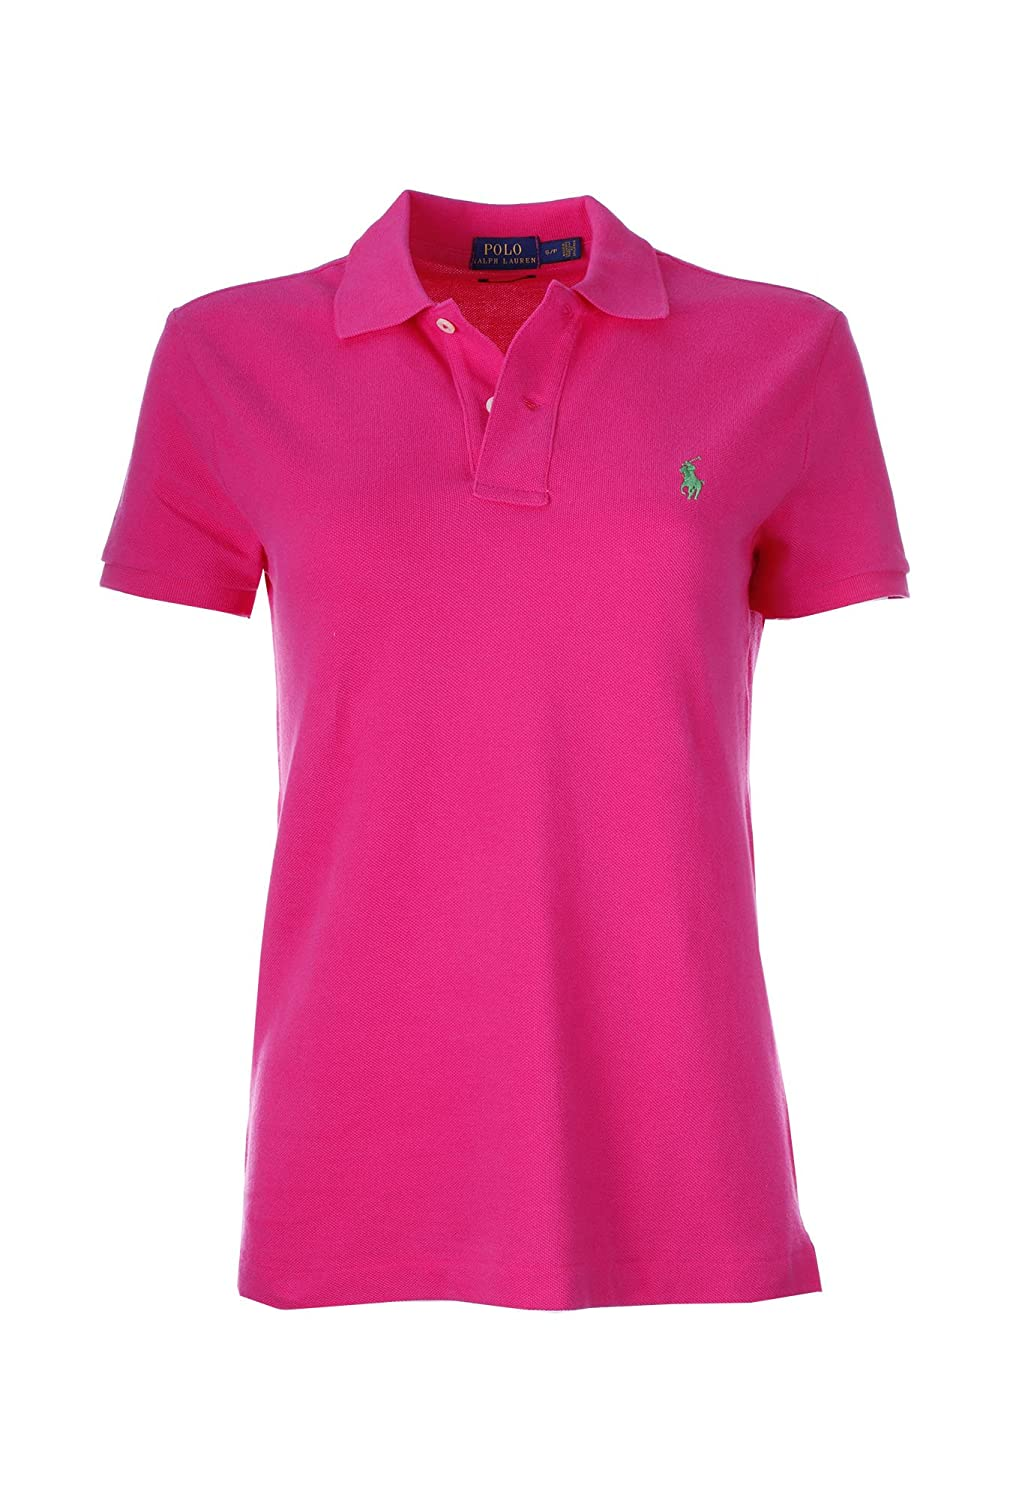 be2533a1c Top12: RALPH LAUREN Polo Women's Classic Fit Mesh Polo Shirt (Small,  Shocking Pink)